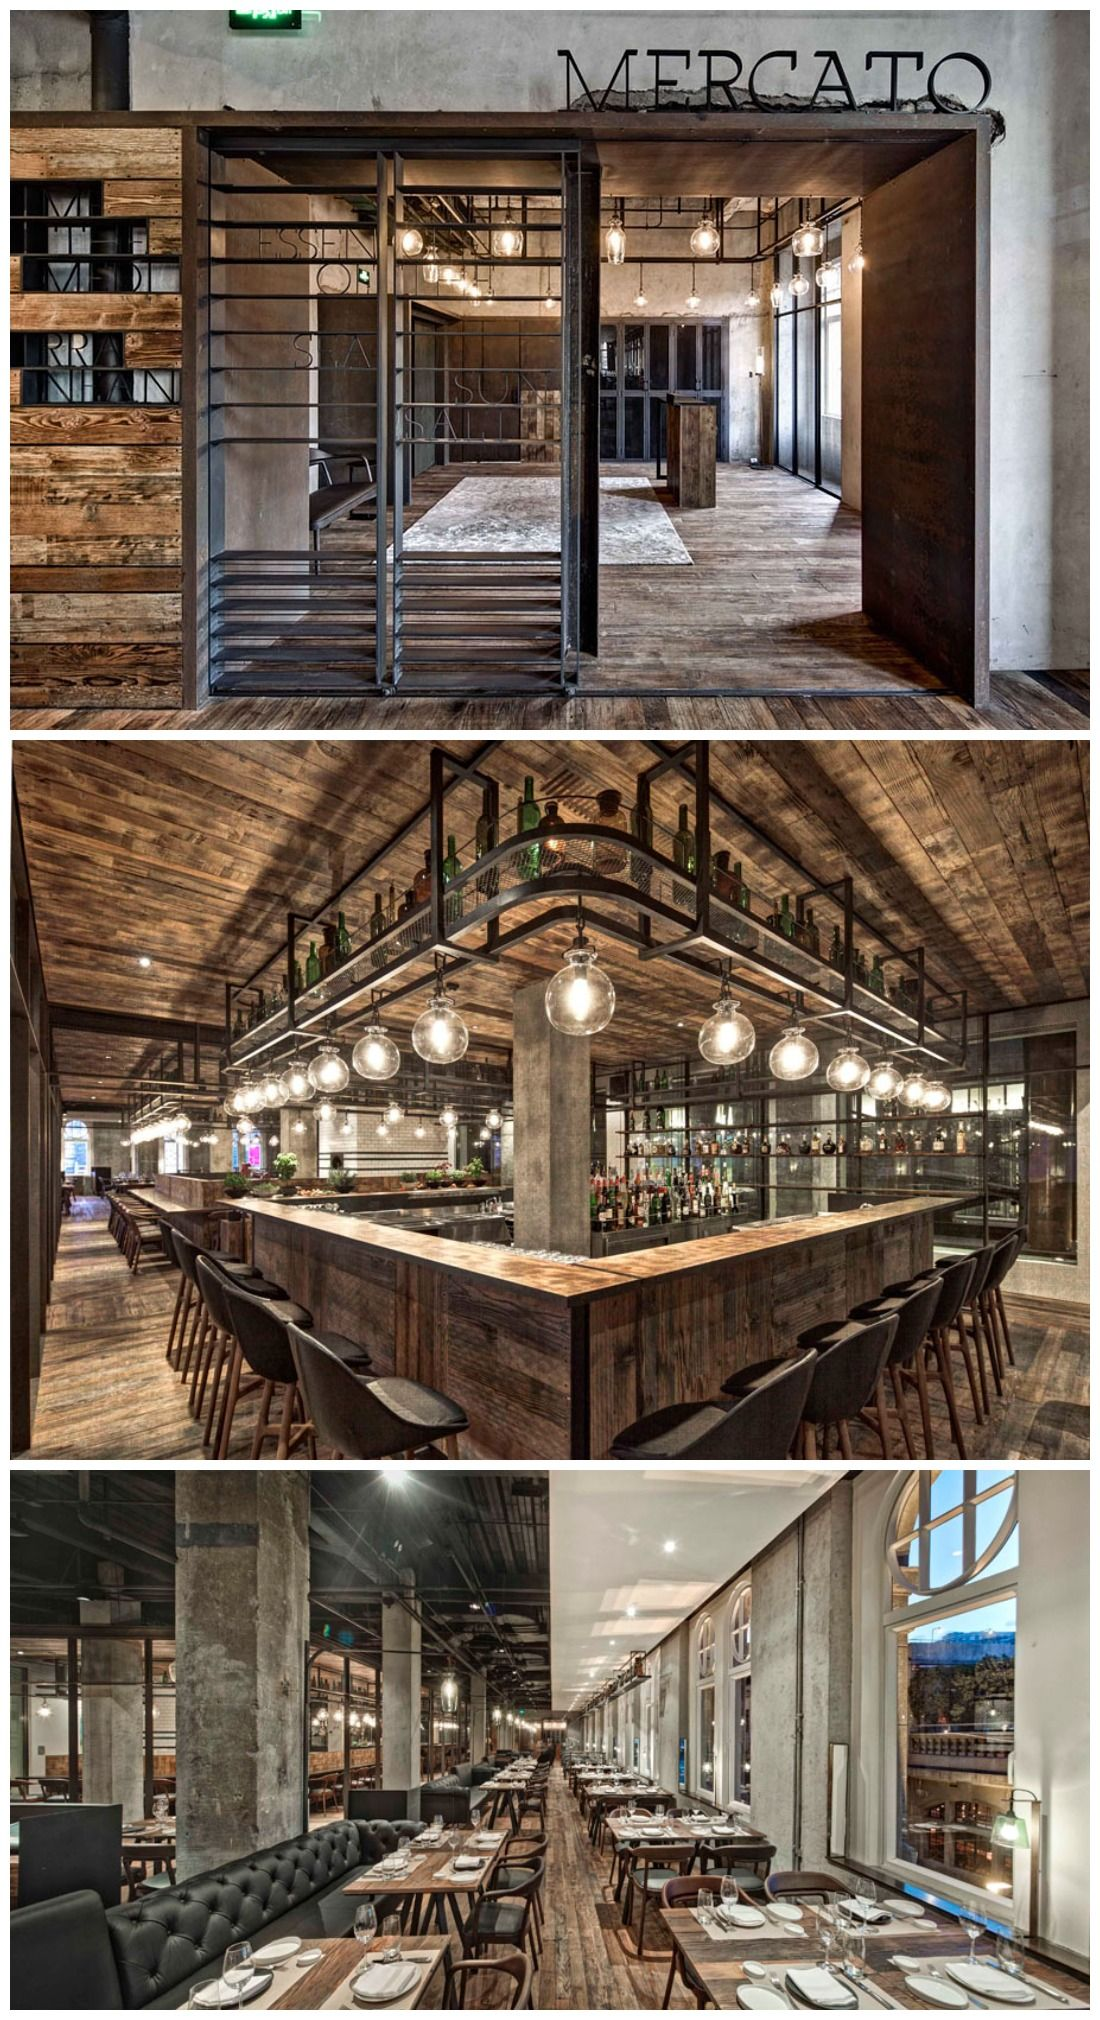 mercato restaurant interior design | bar ideas | pinterest